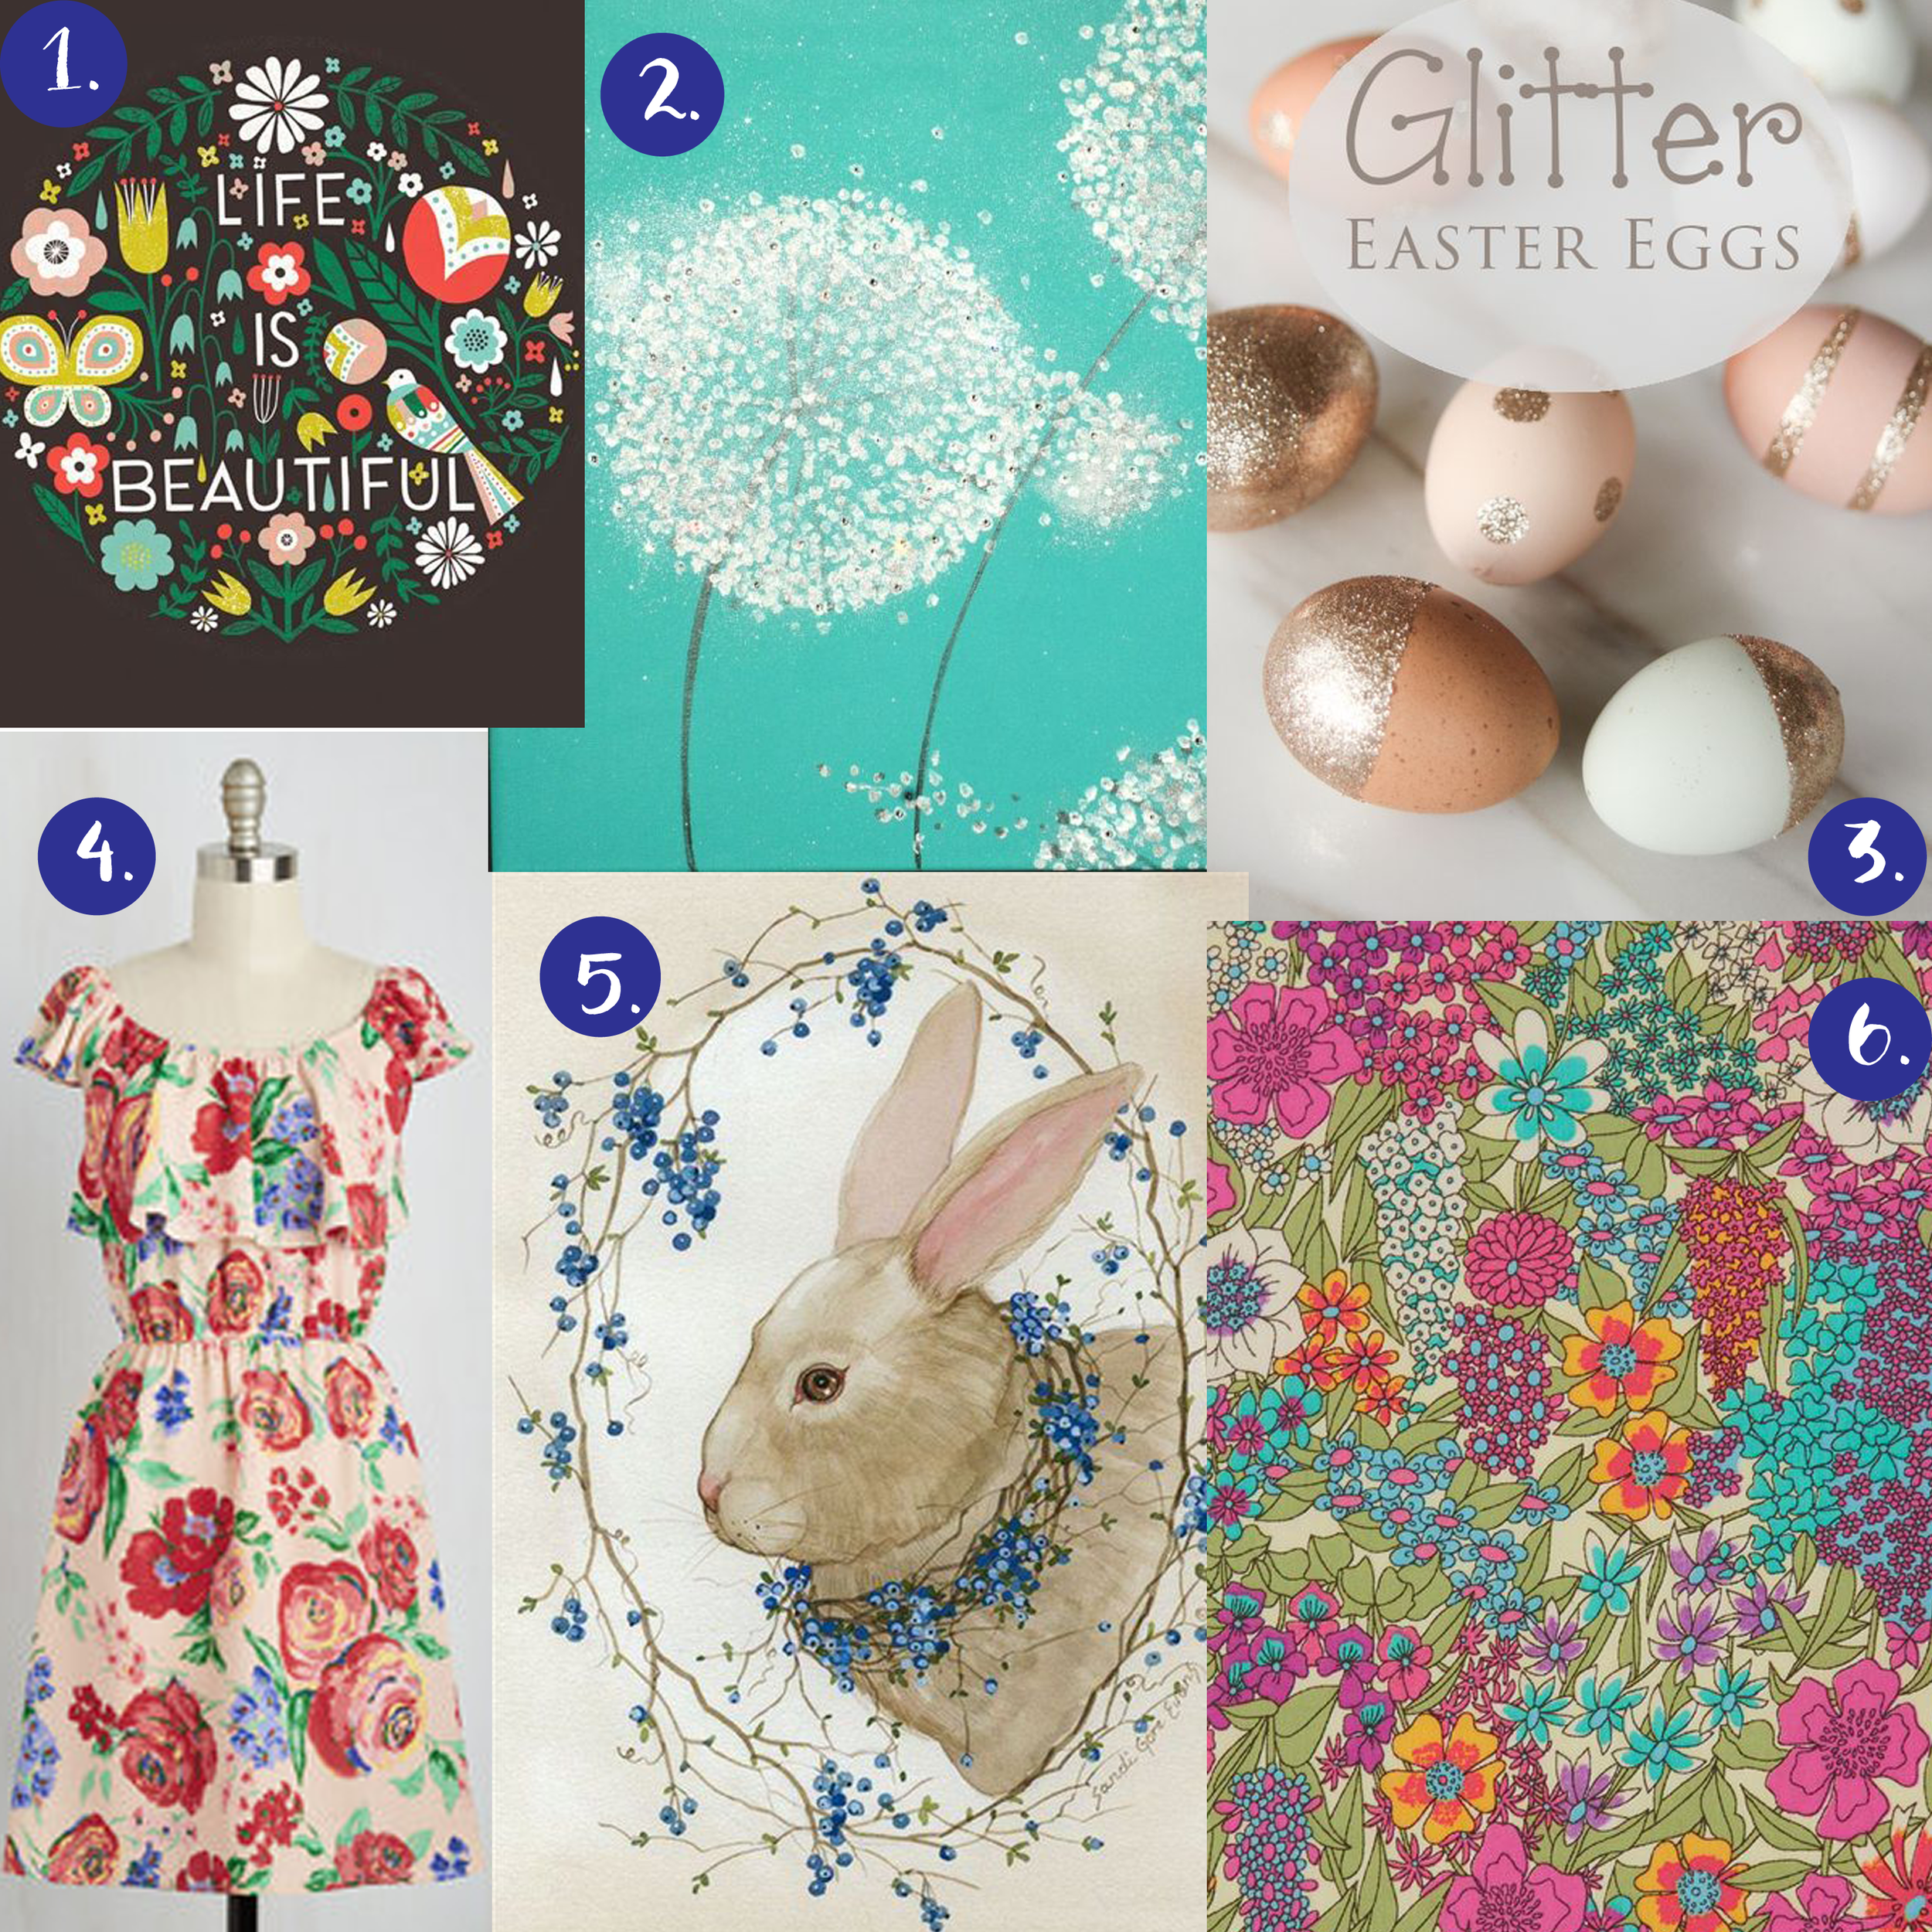 1. life is beautiful illustration   2. dandelion painting   3. glitter eggs   4. floral dress   5. rabbit painting   6. floral pattern